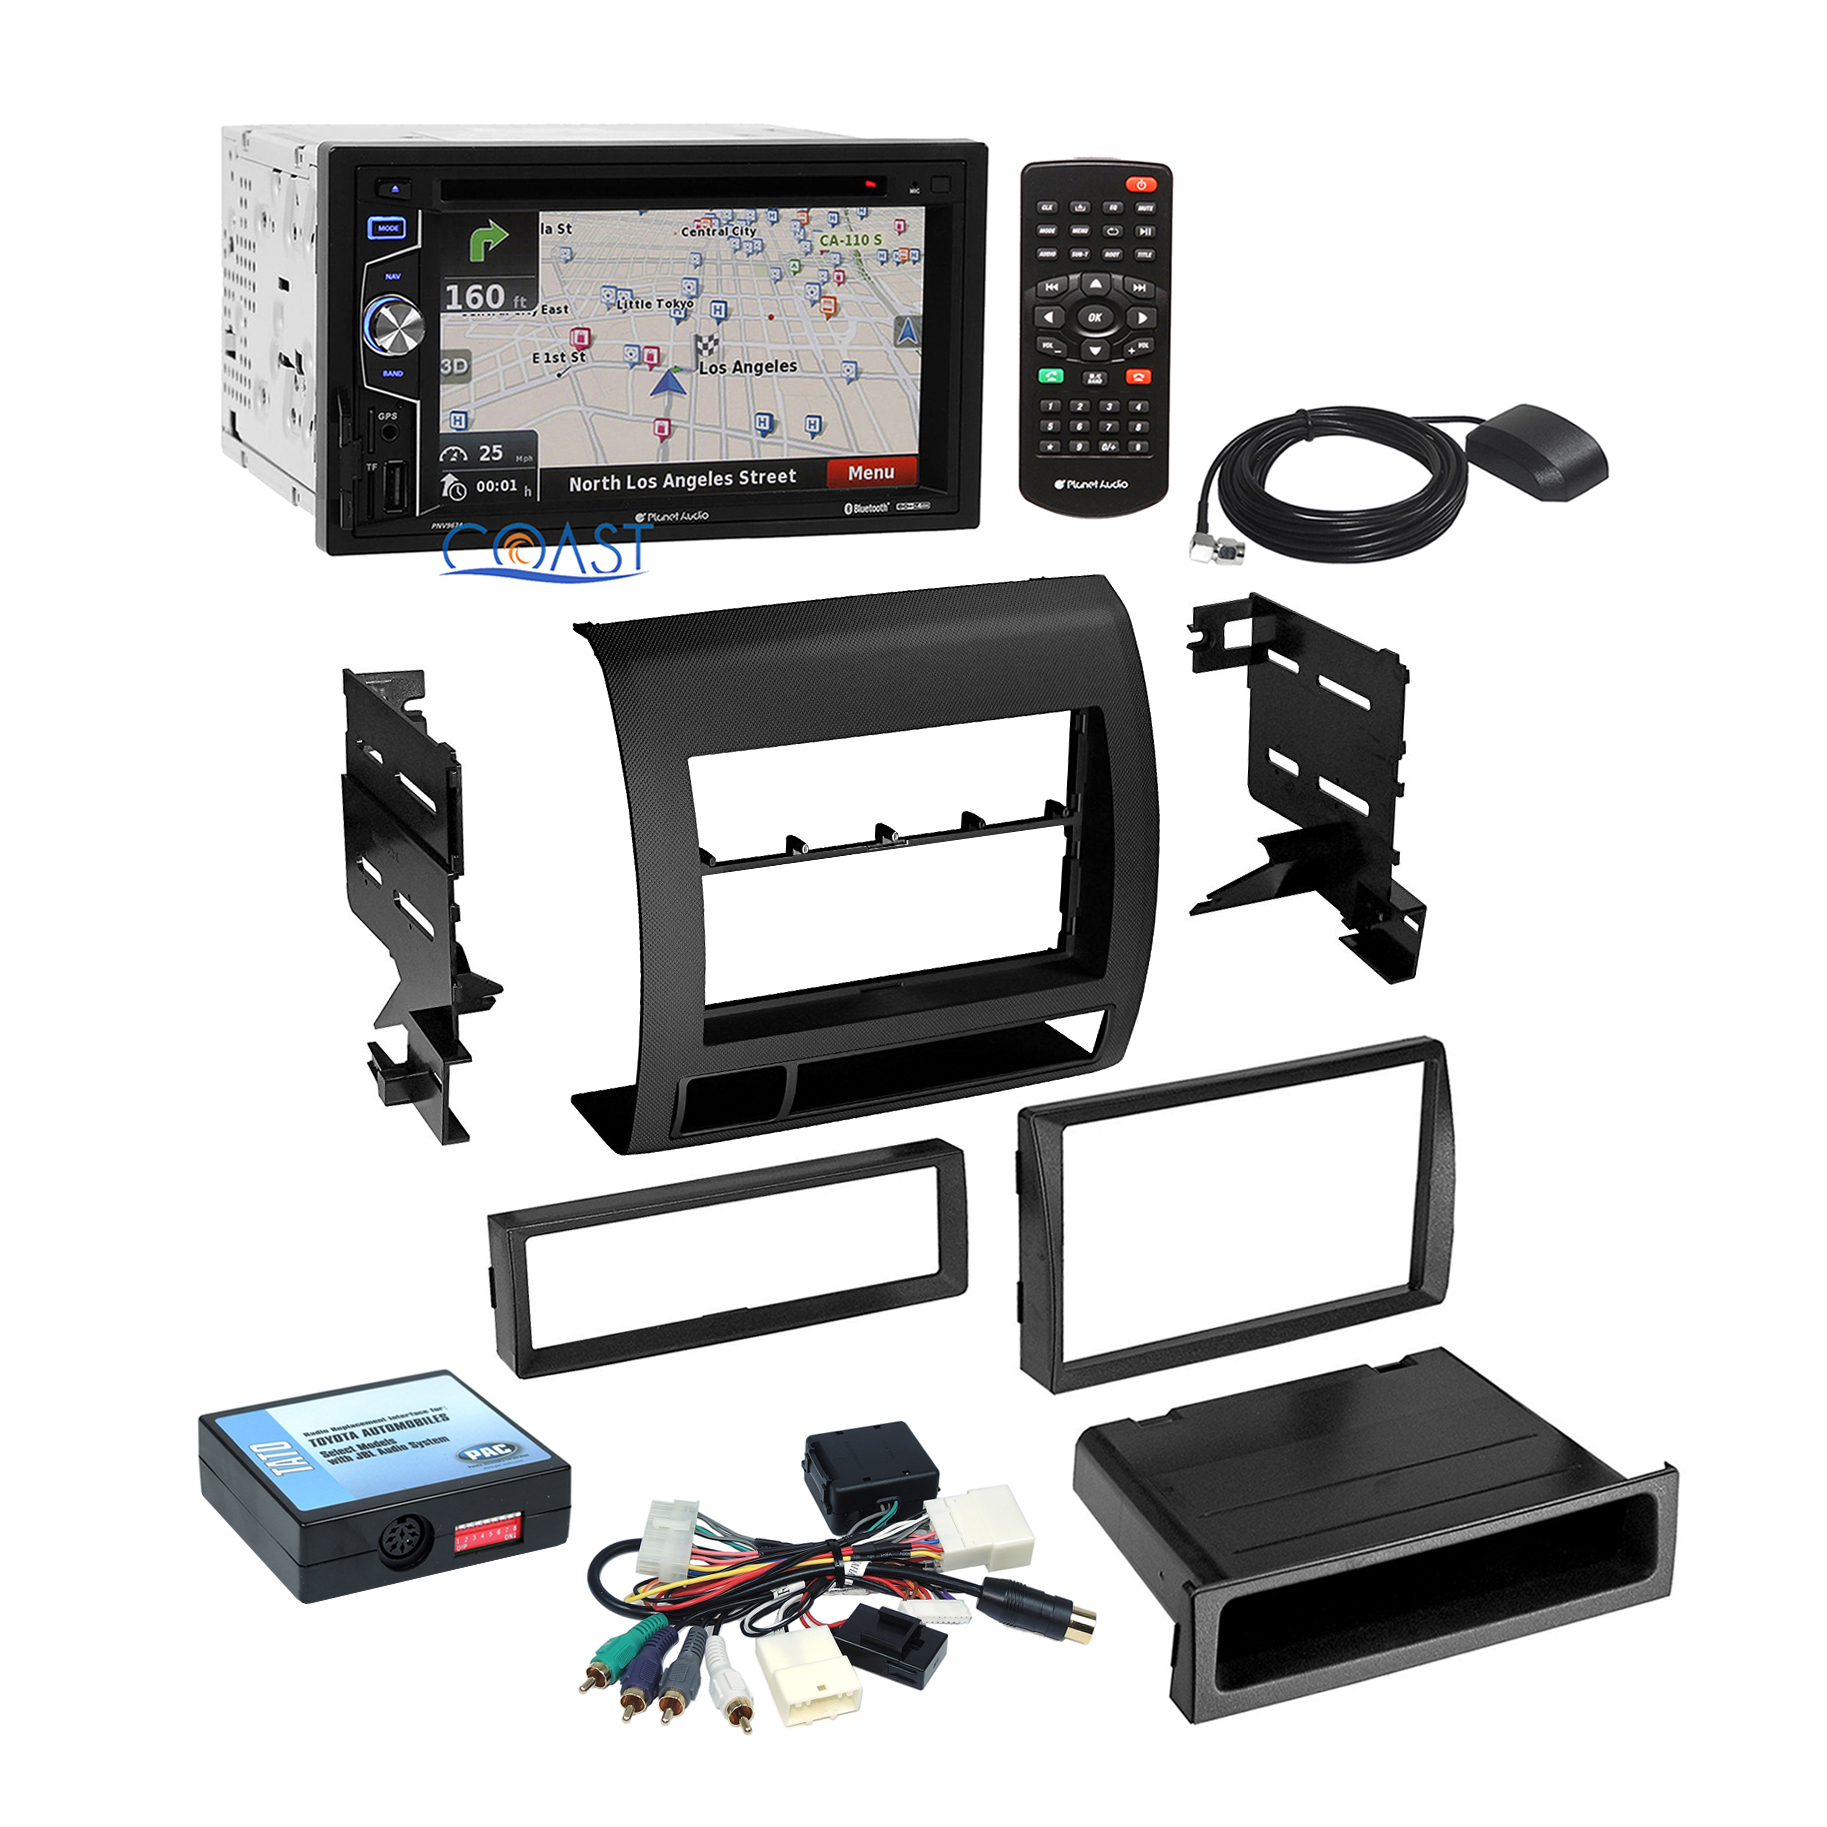 hight resolution of details about planet audio car stereo black dash kit jbl wire harness for 05 11 toyota tacoma